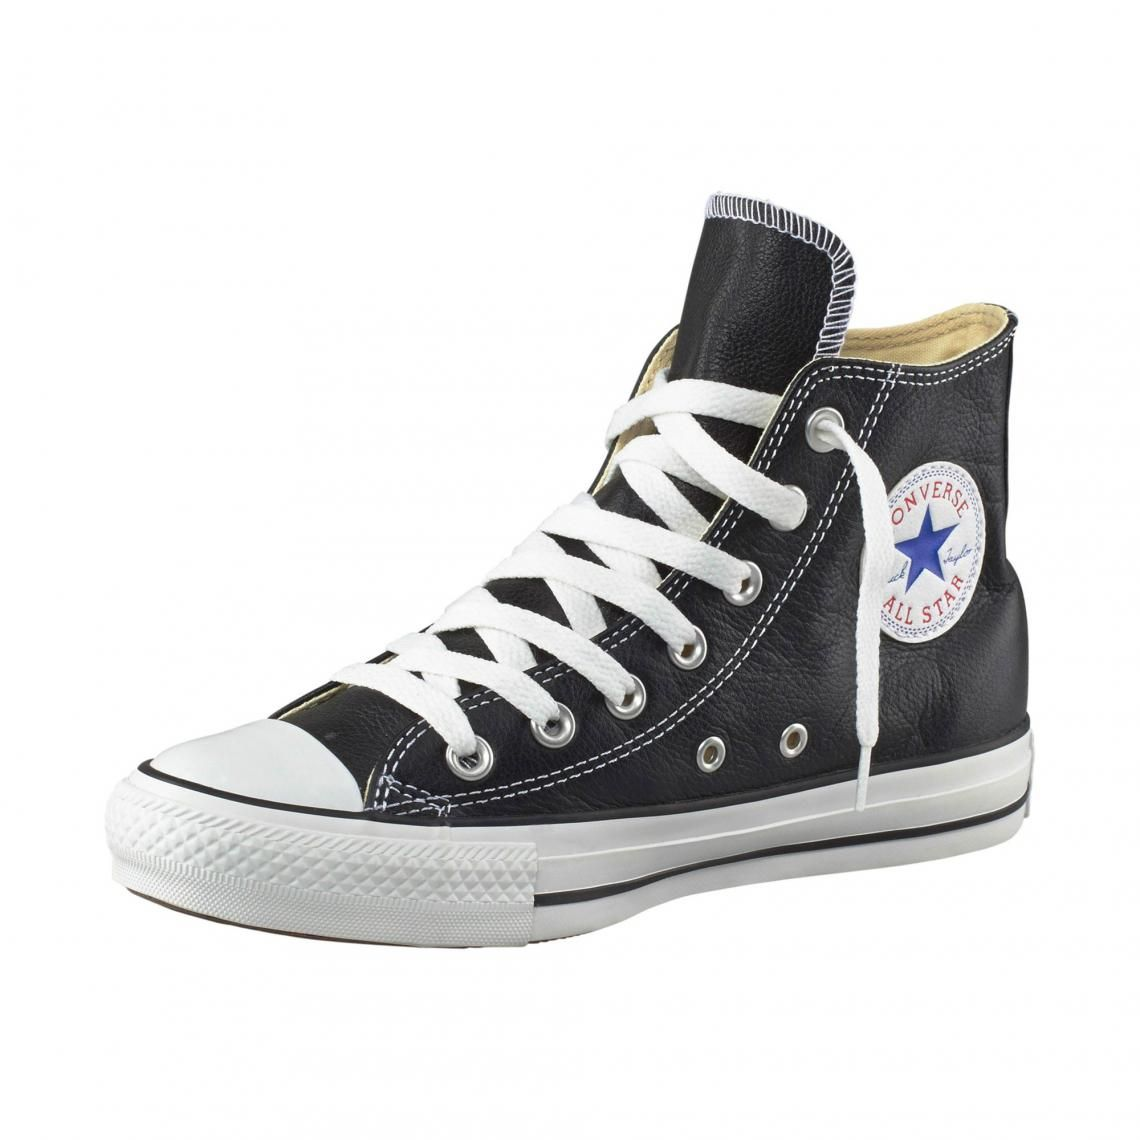 Baskets montantes Converse All Star Basic Leather cuir homme ...